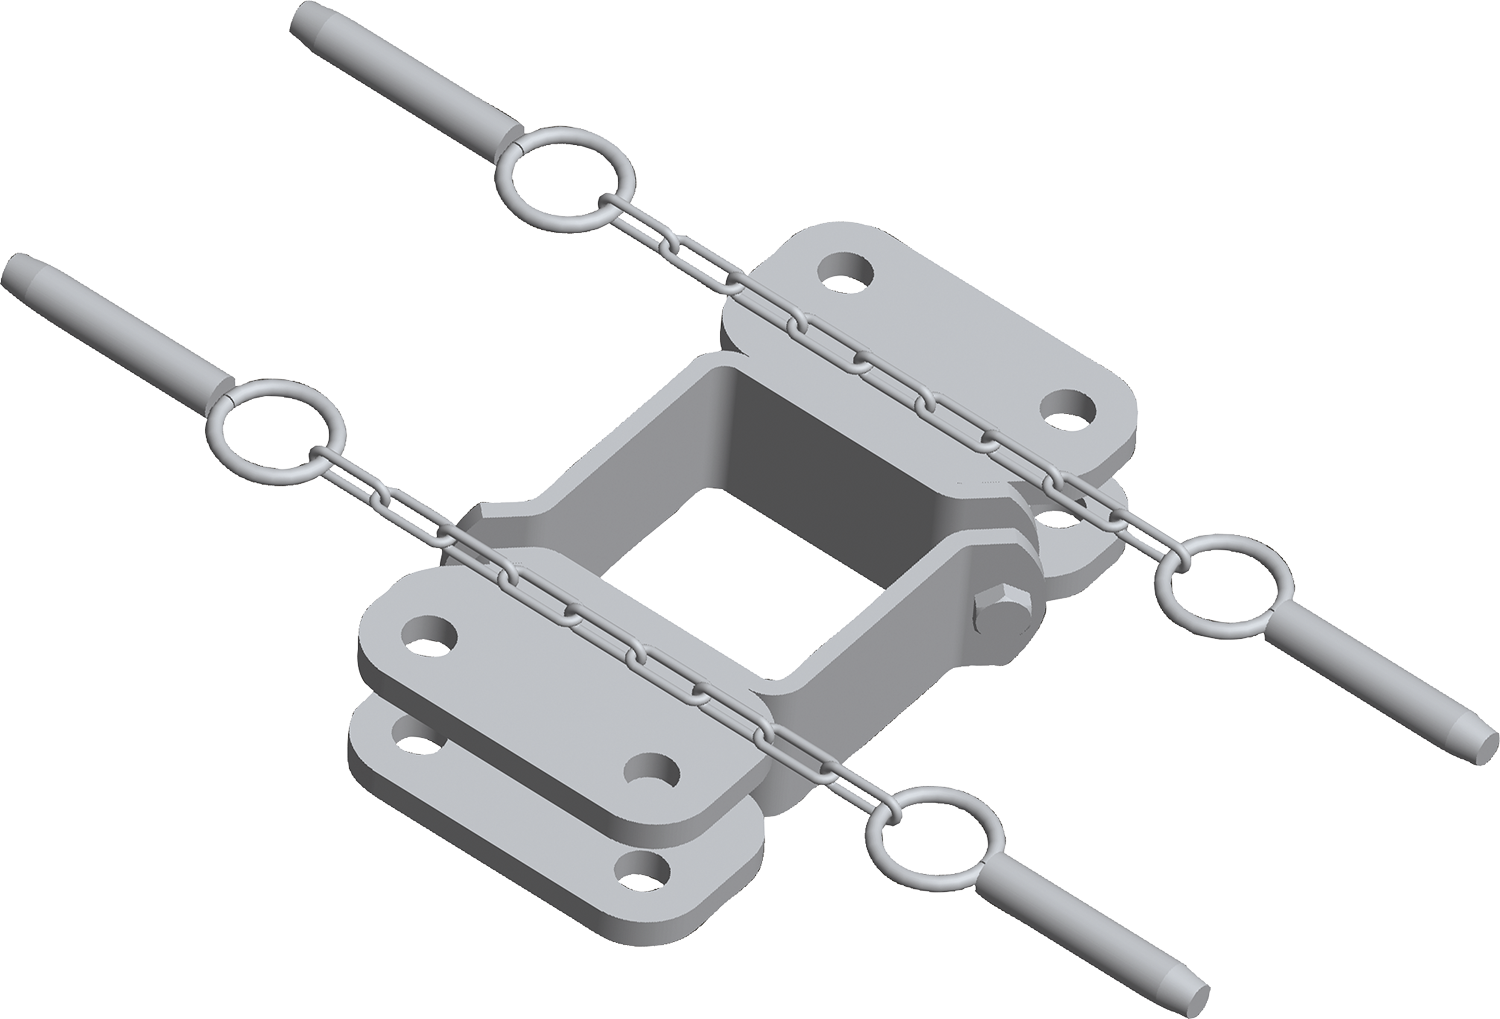 Schelle Quadrat 90 mm, 4 Halter, parallel